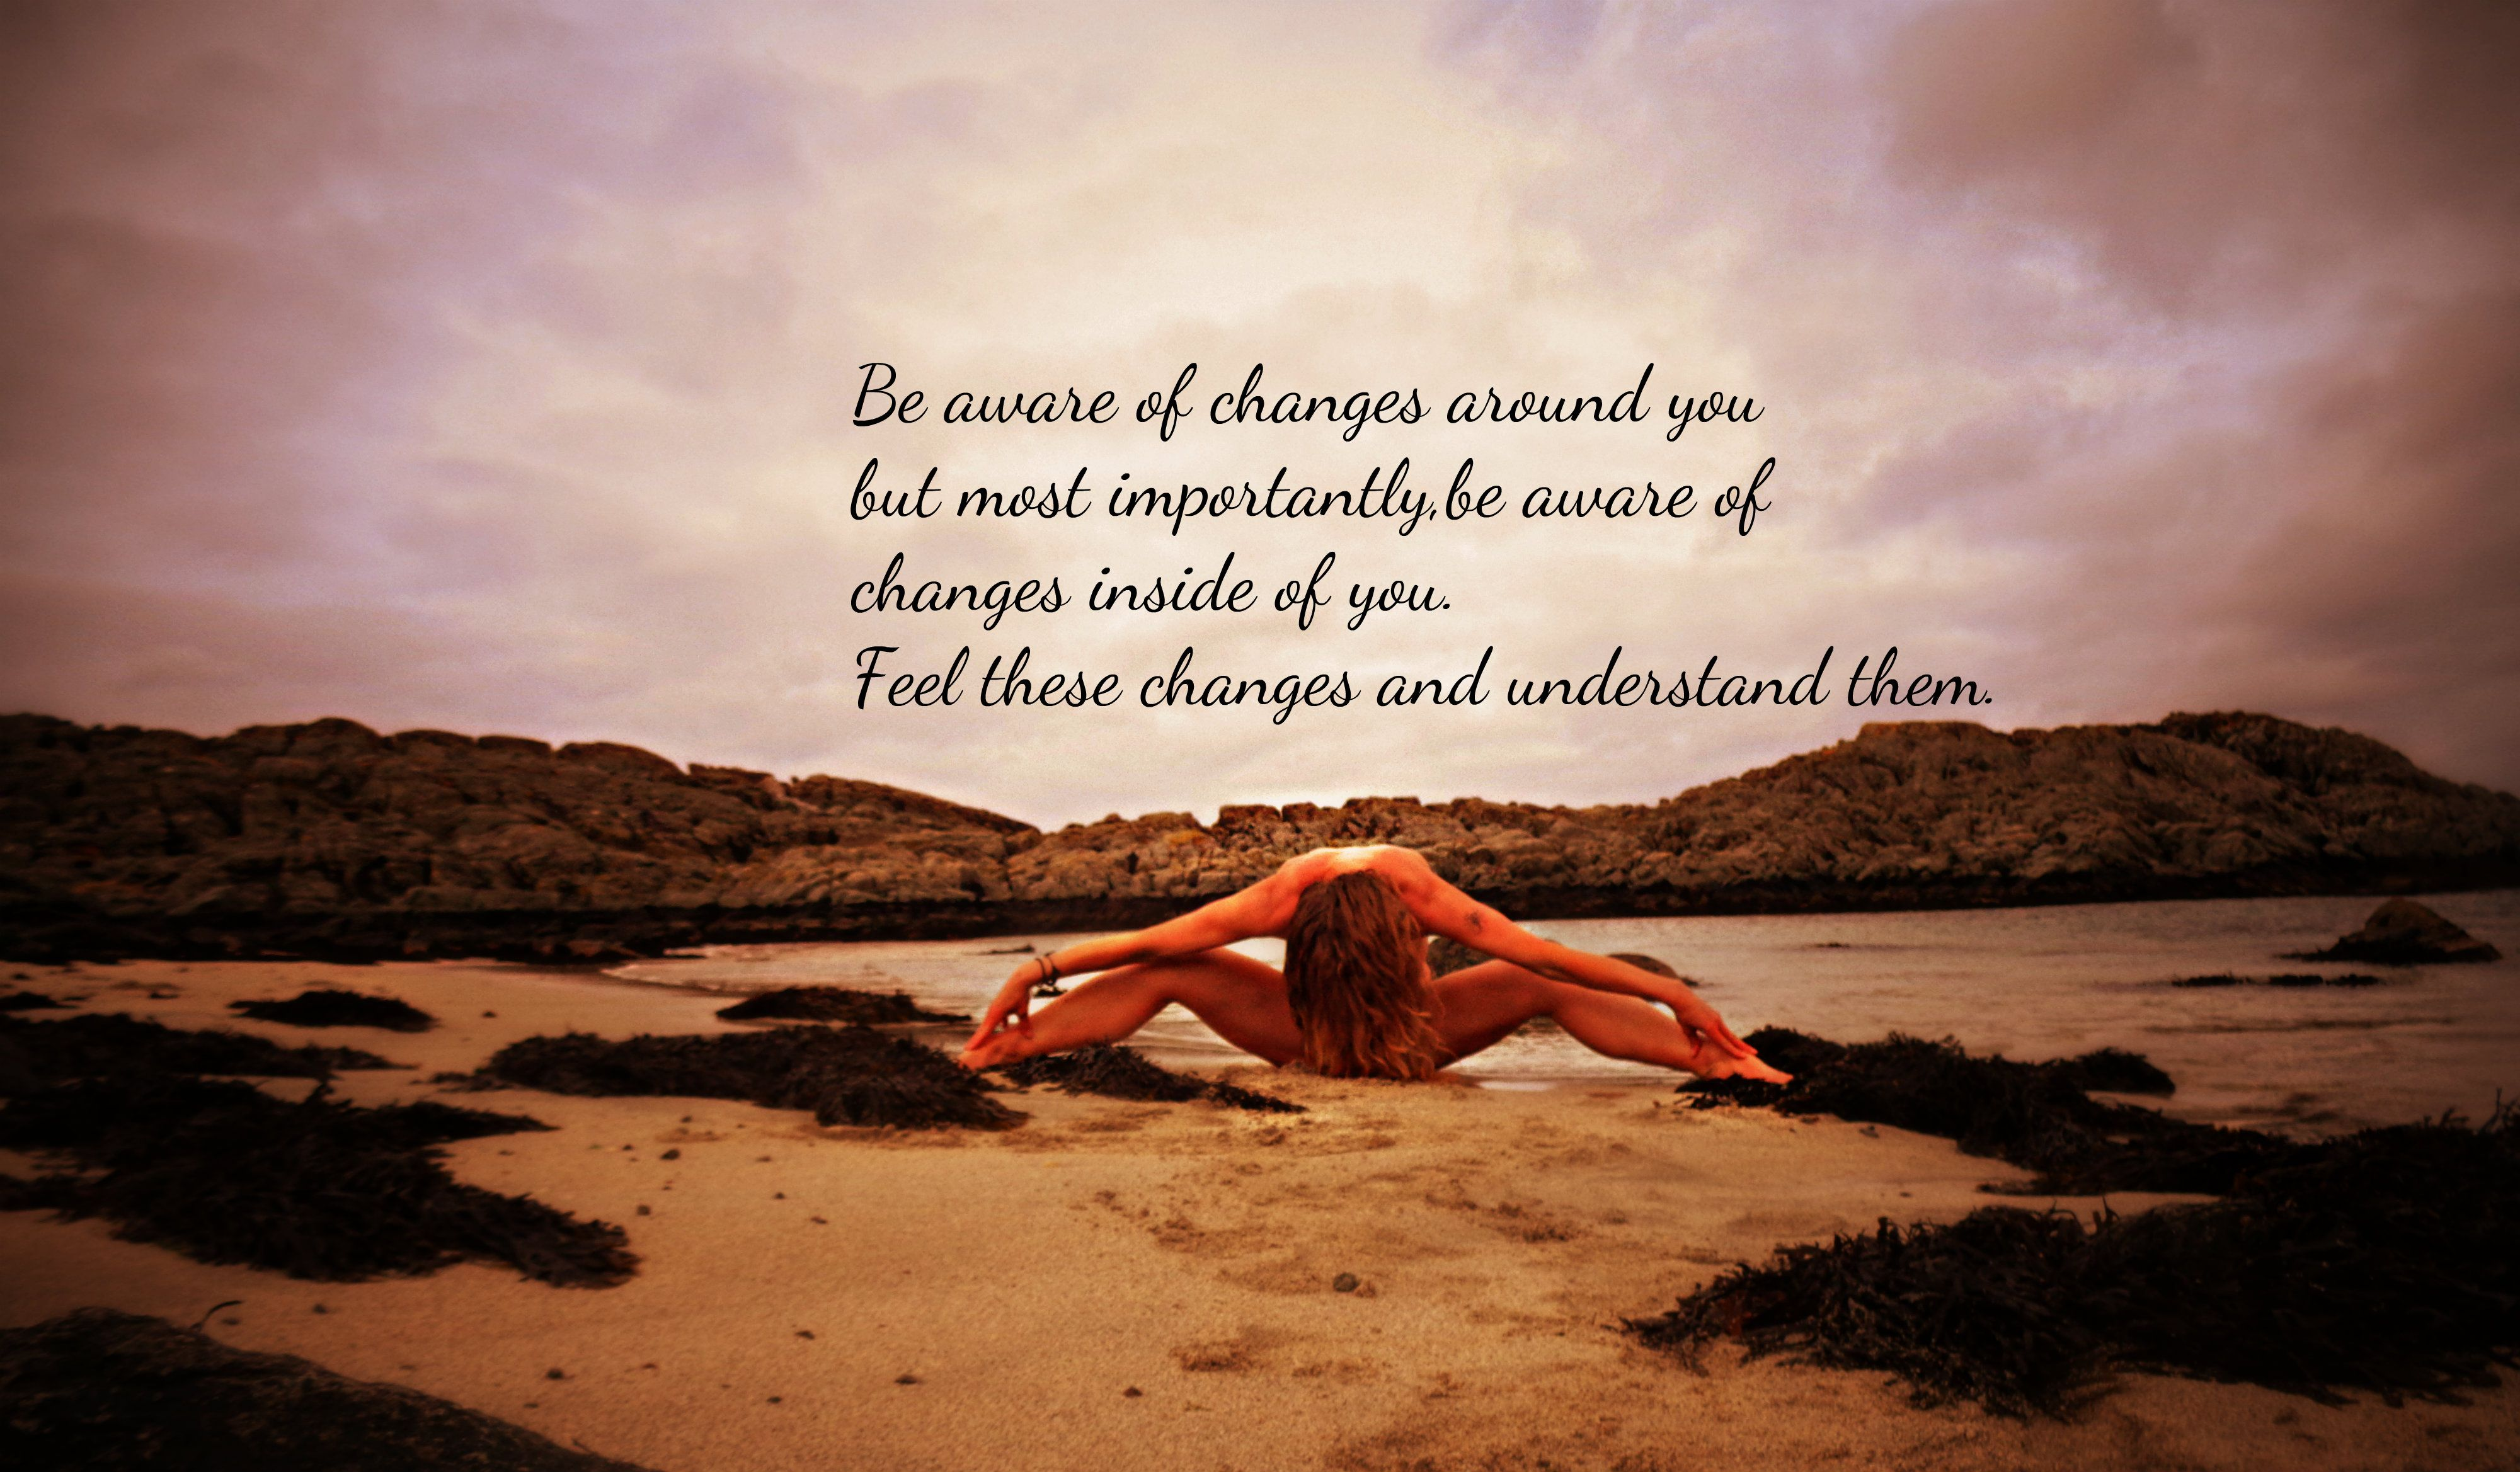 Be aware of changes .Feel them and understand them. #MyYoga #BeachYoga #Awareness #Love #Life